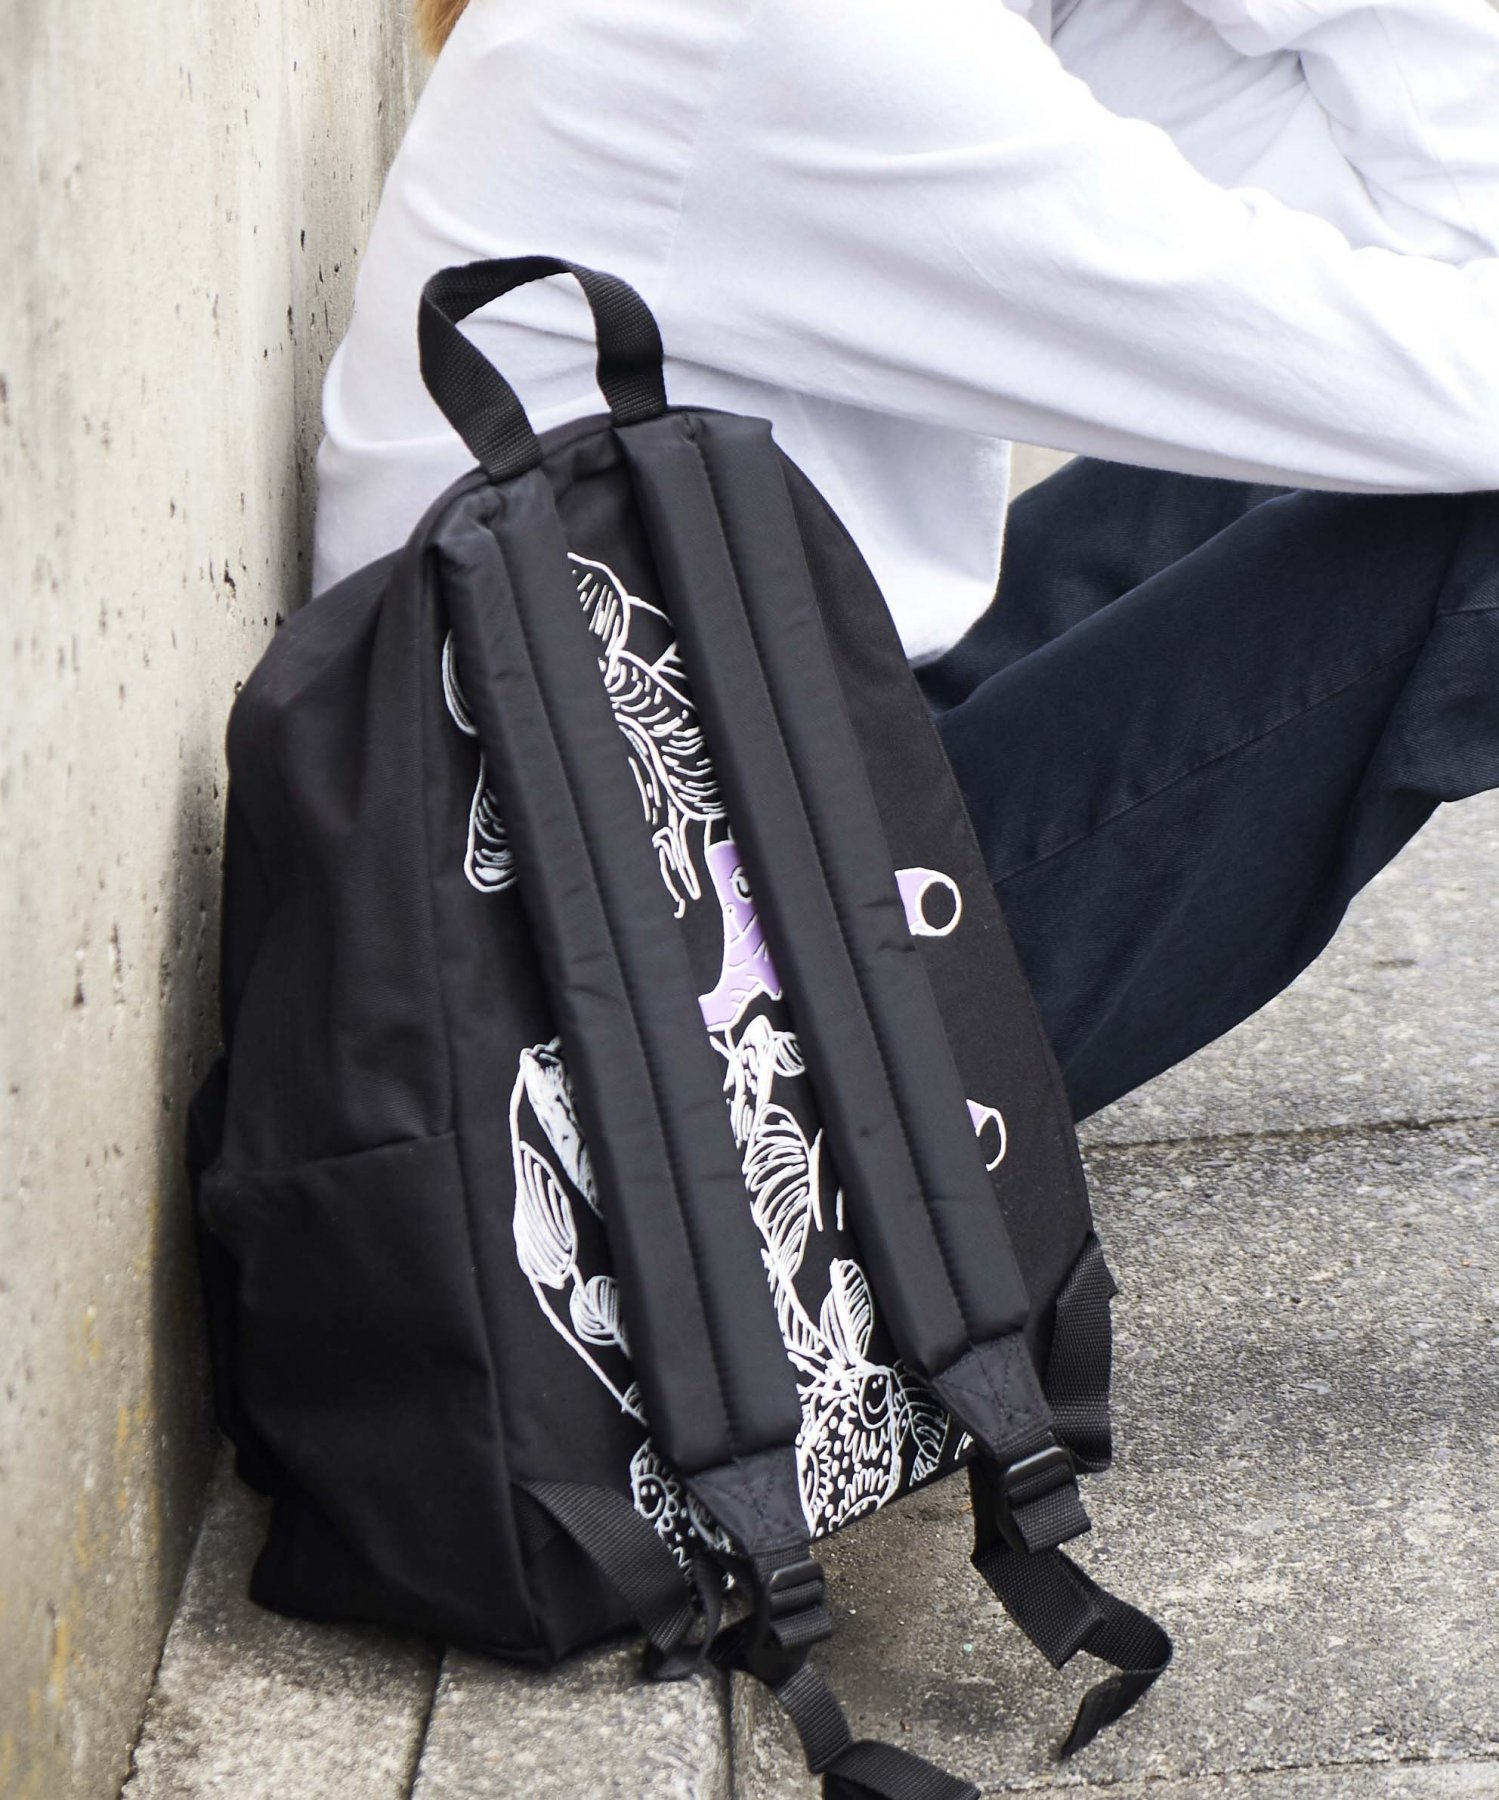 <img class='new_mark_img1' src='https://img.shop-pro.jp/img/new/icons15.gif' style='border:none;display:inline;margin:0px;padding:0px;width:auto;' />【REBIRTHPROJECT × EASTPAK 】PADDED PAK'R by オートモアイ(5月中旬お届け)